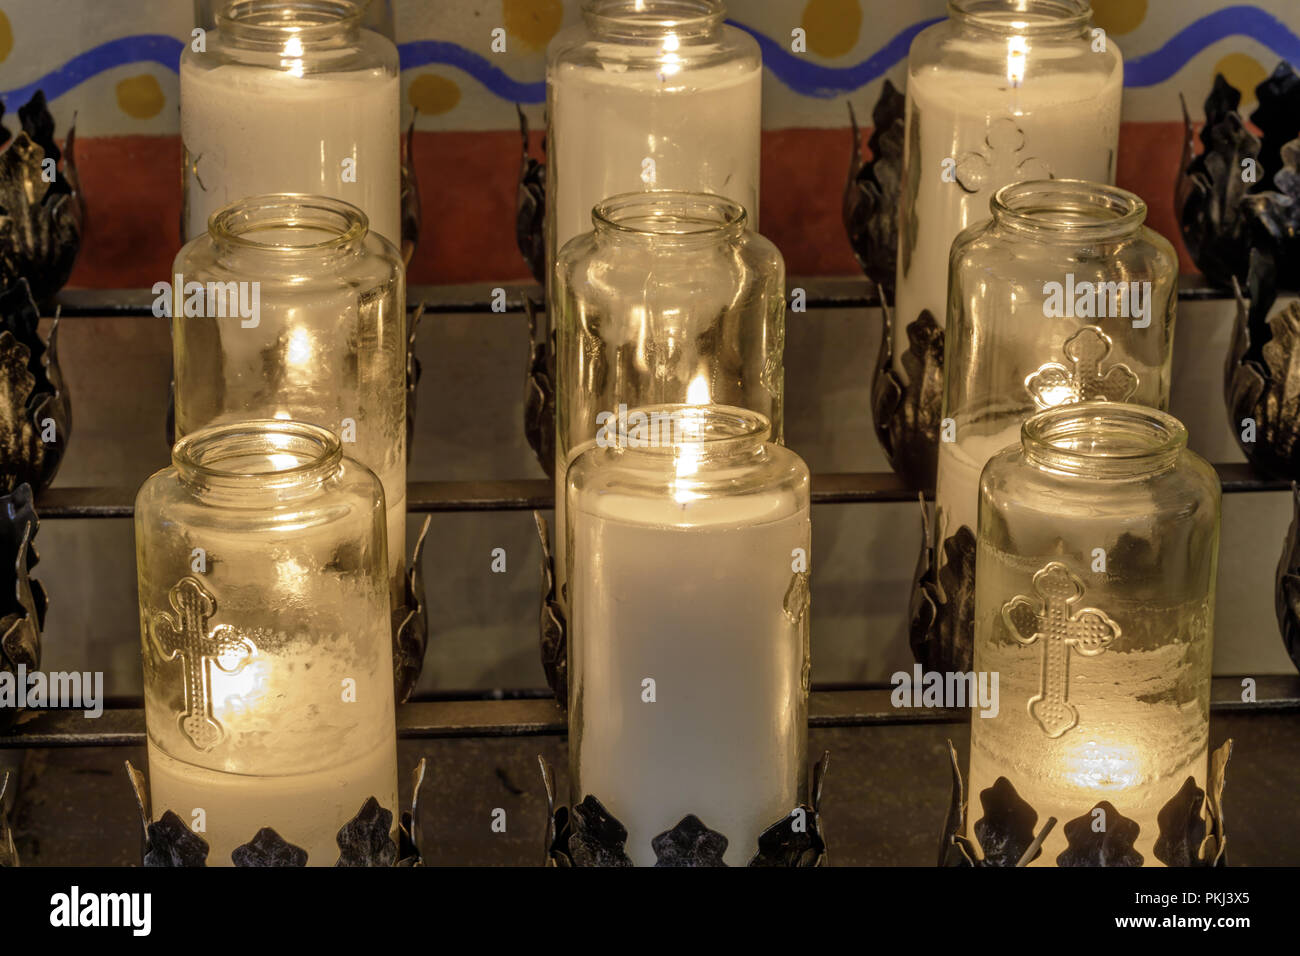 Burning votive candles in a church. - Stock Image